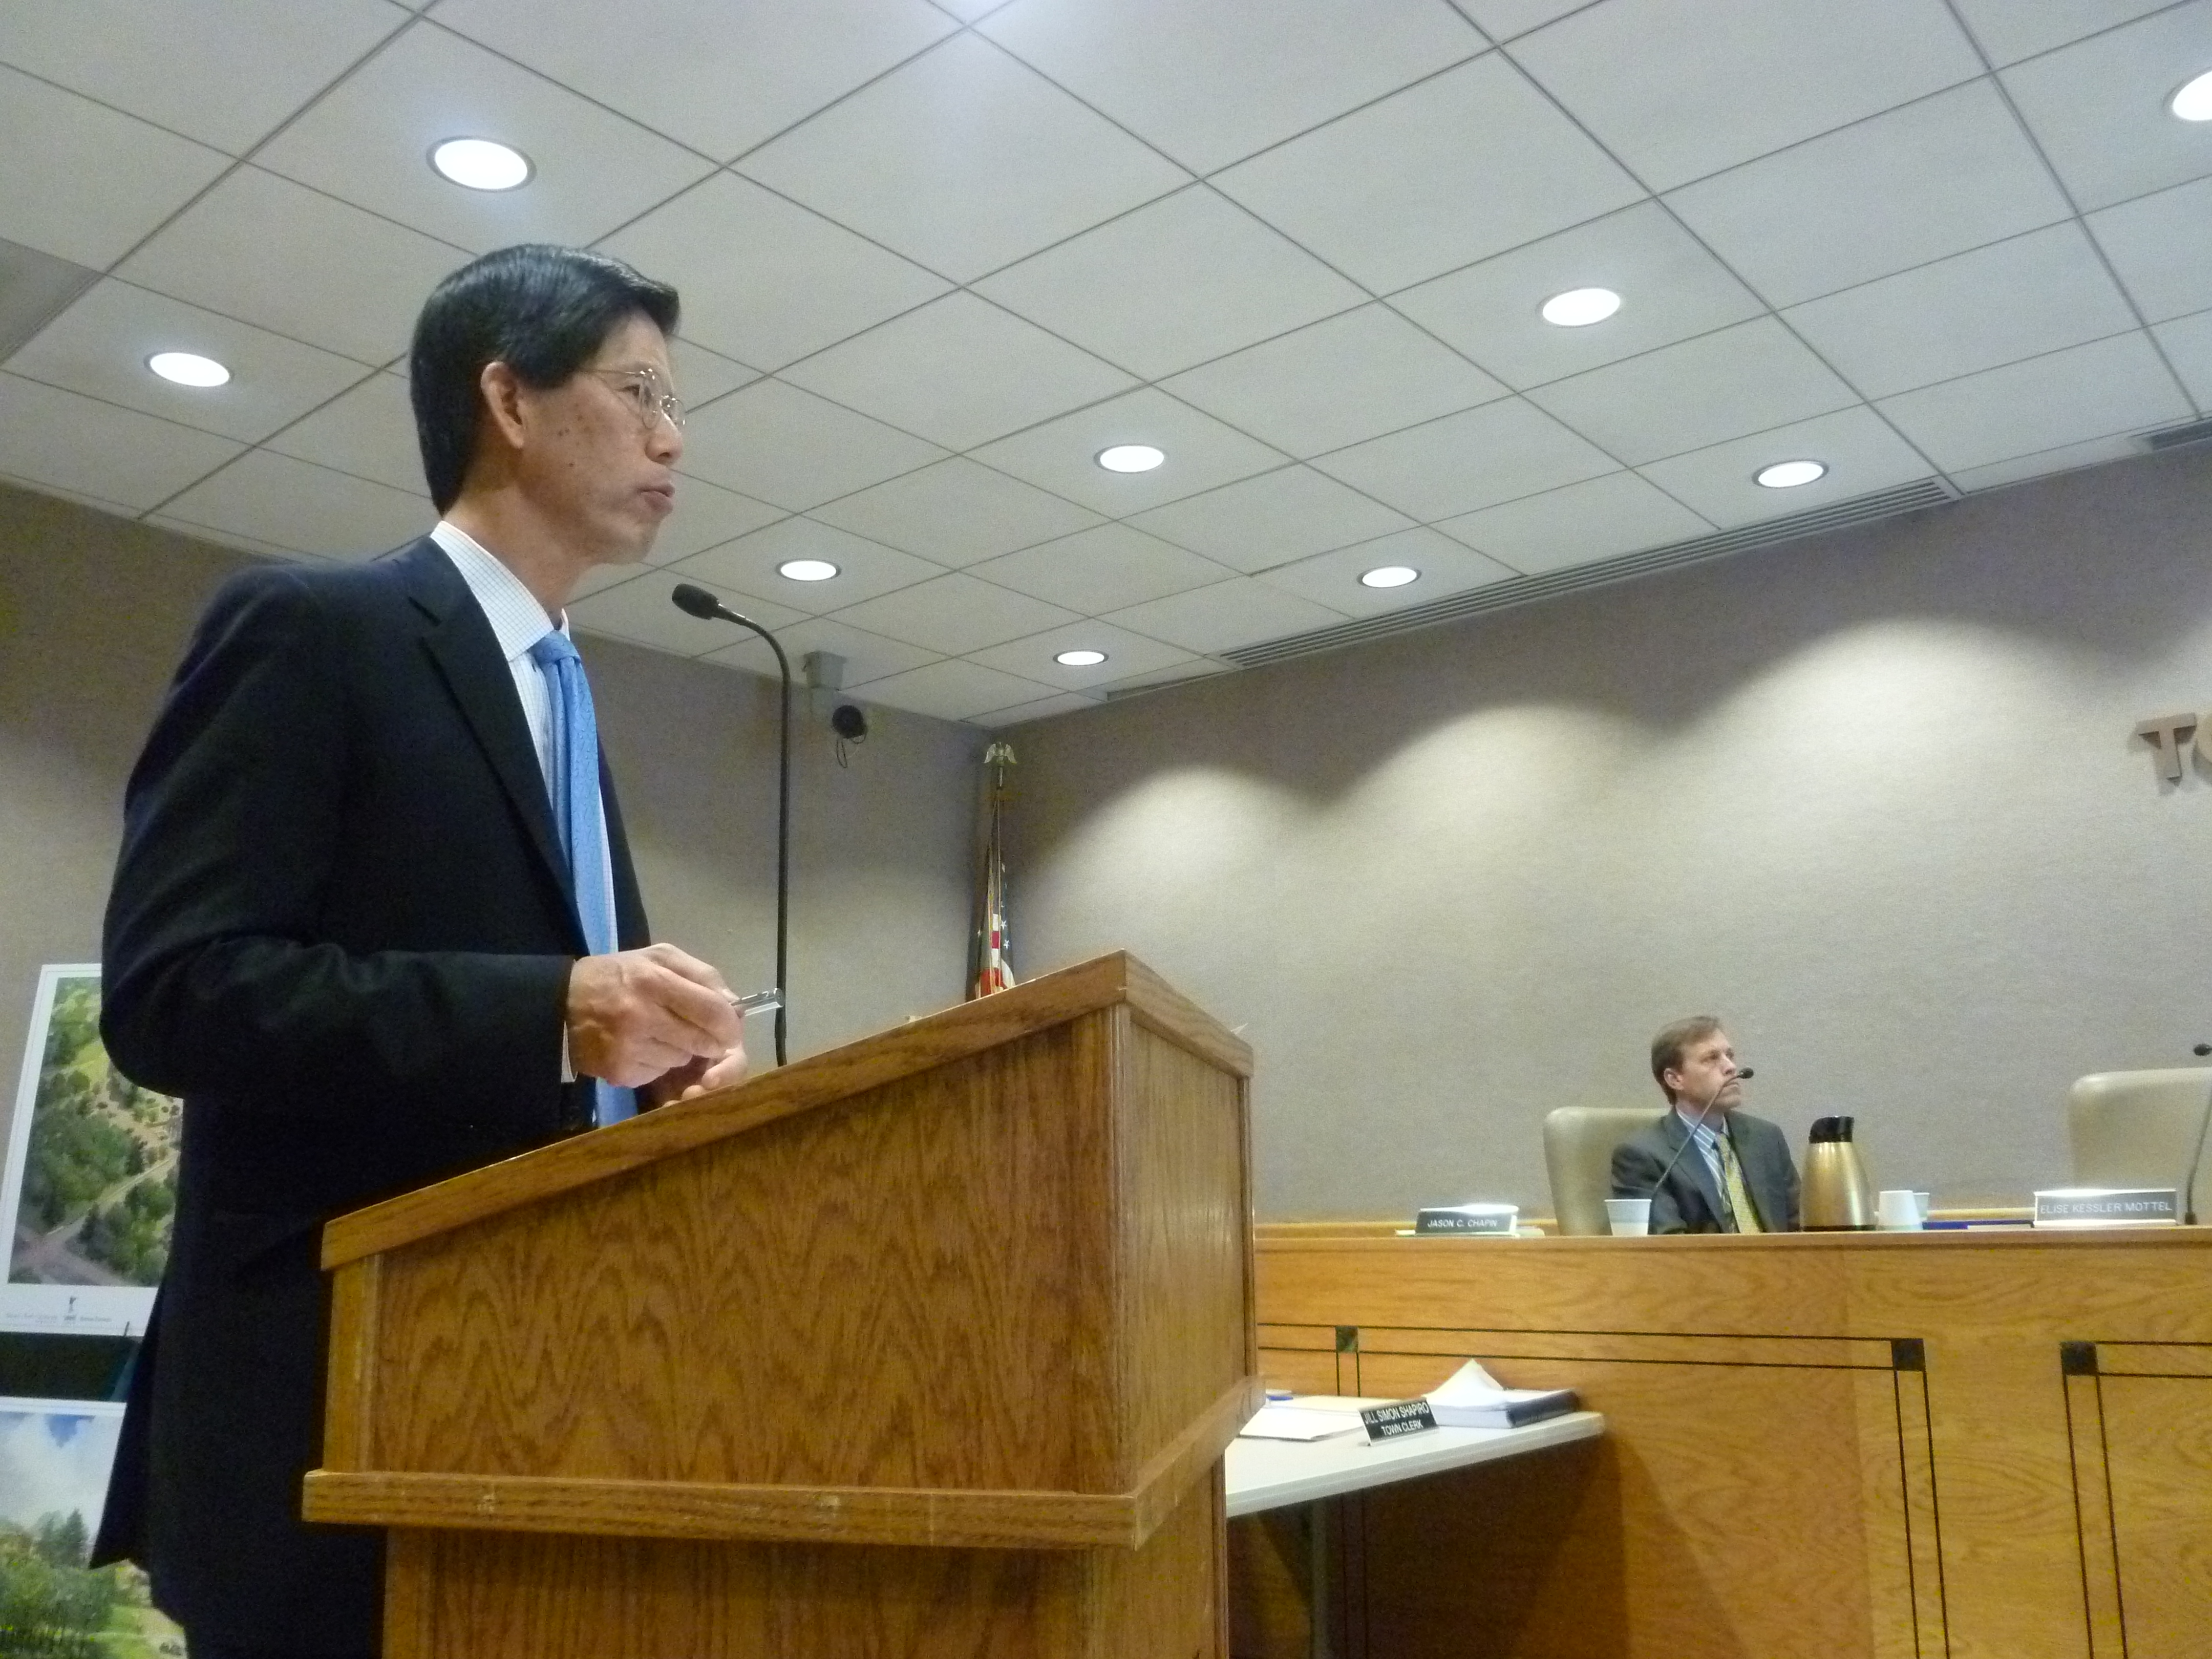 Andrew Tung, a planning and engineering consultant for the planned new uses on the site, on Tuesday presented the company's proposal for a retail center at Chappaqua Crossing to the New Castle Planning Board.